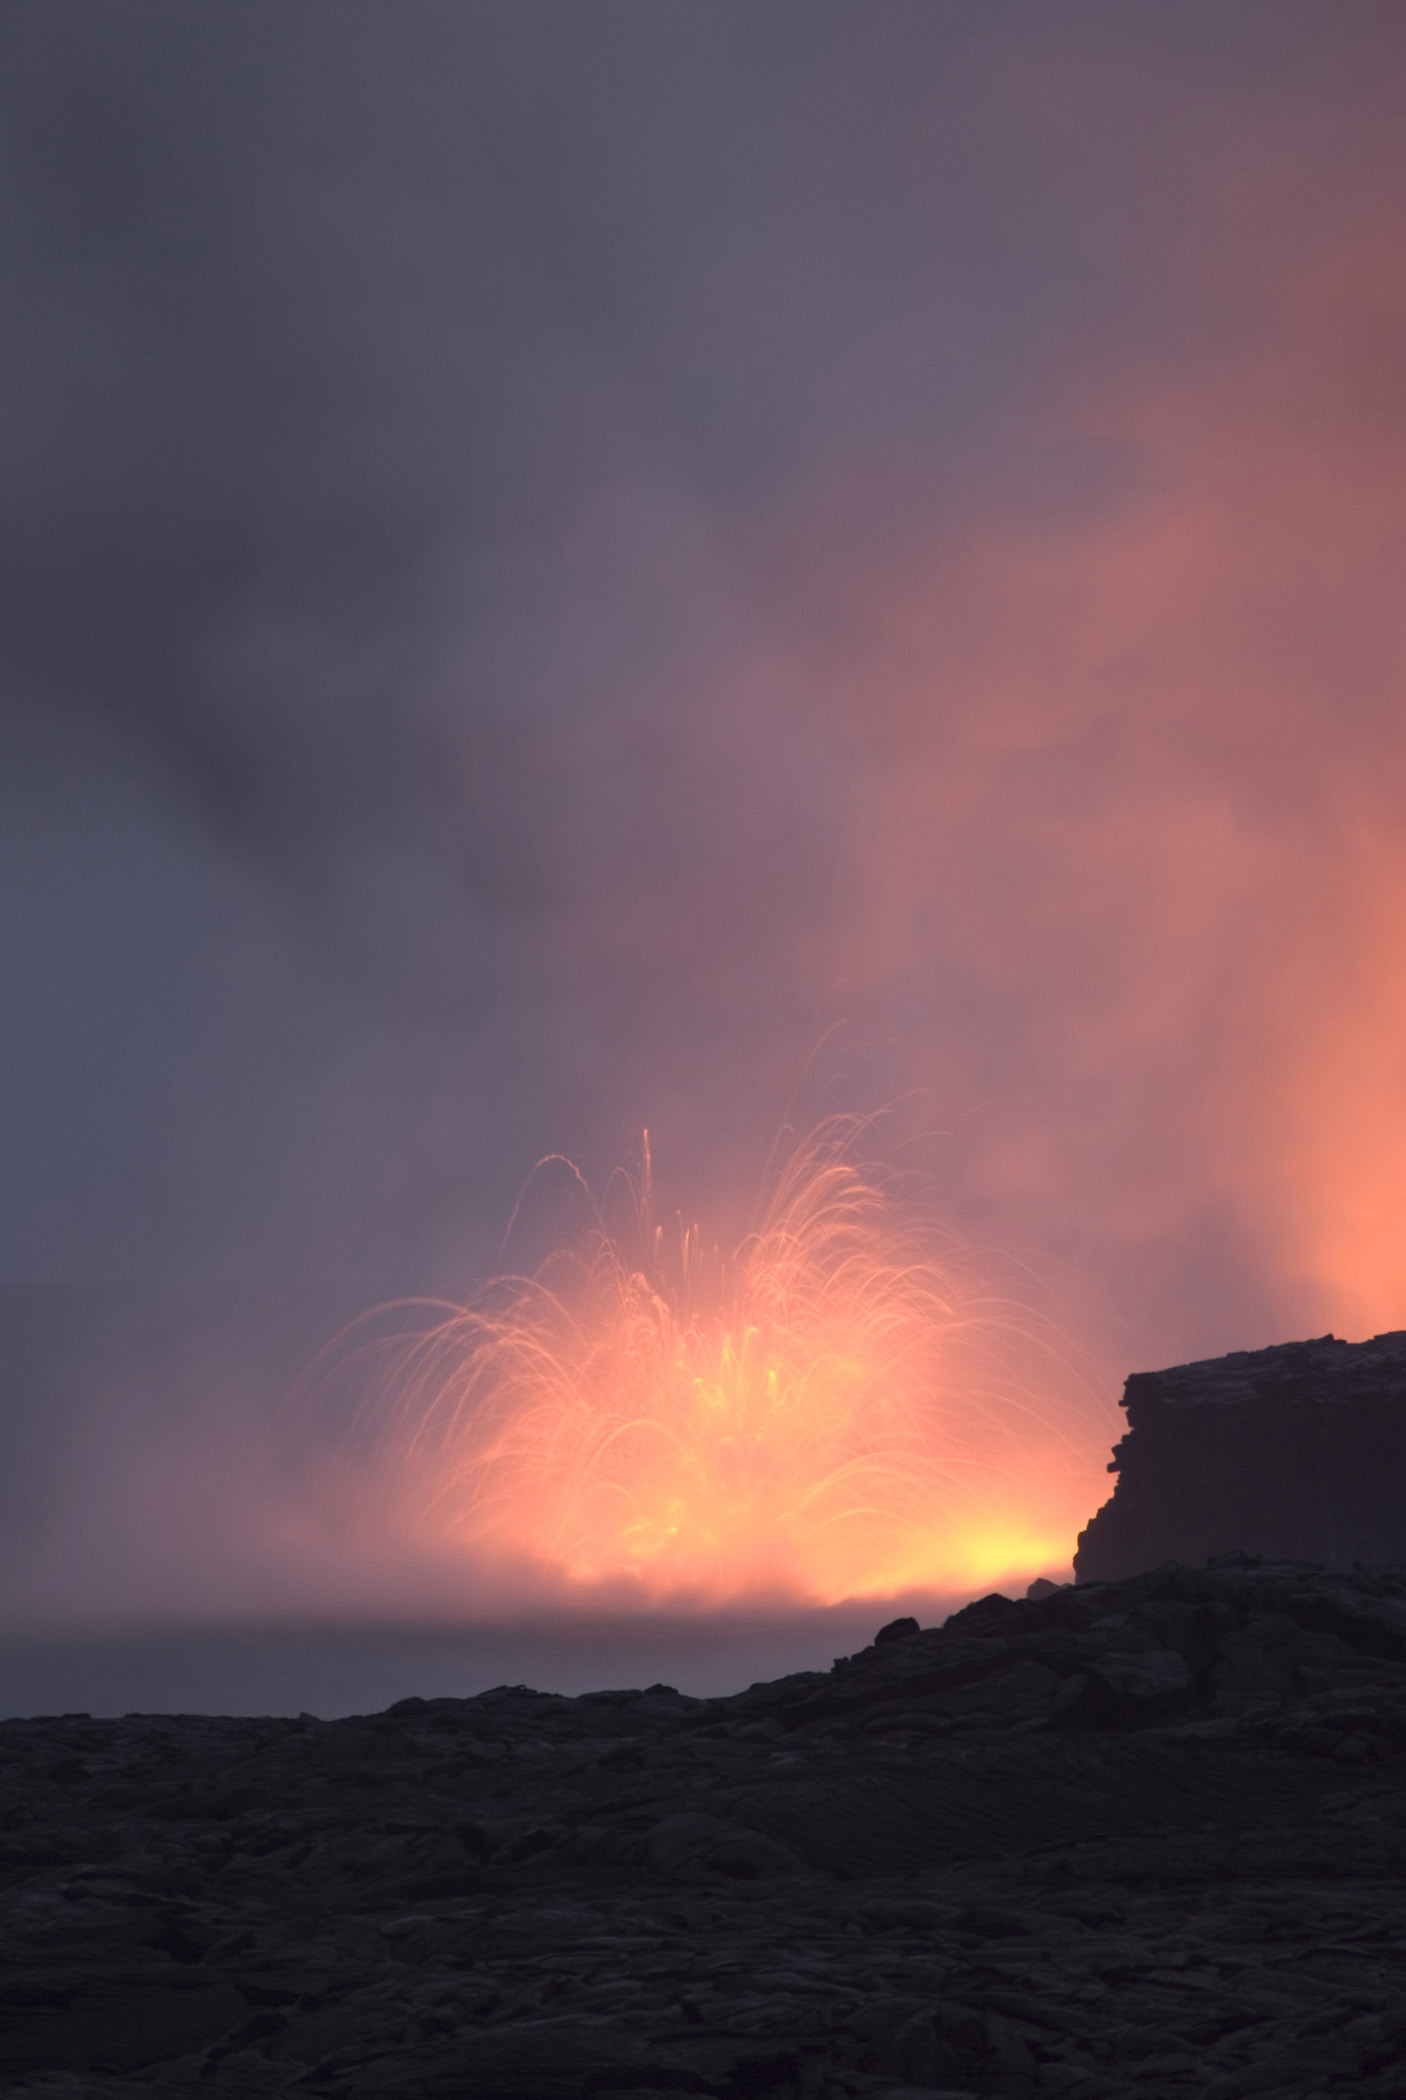 Smoke From Red Hot Volcanic Lava Captured a Night.